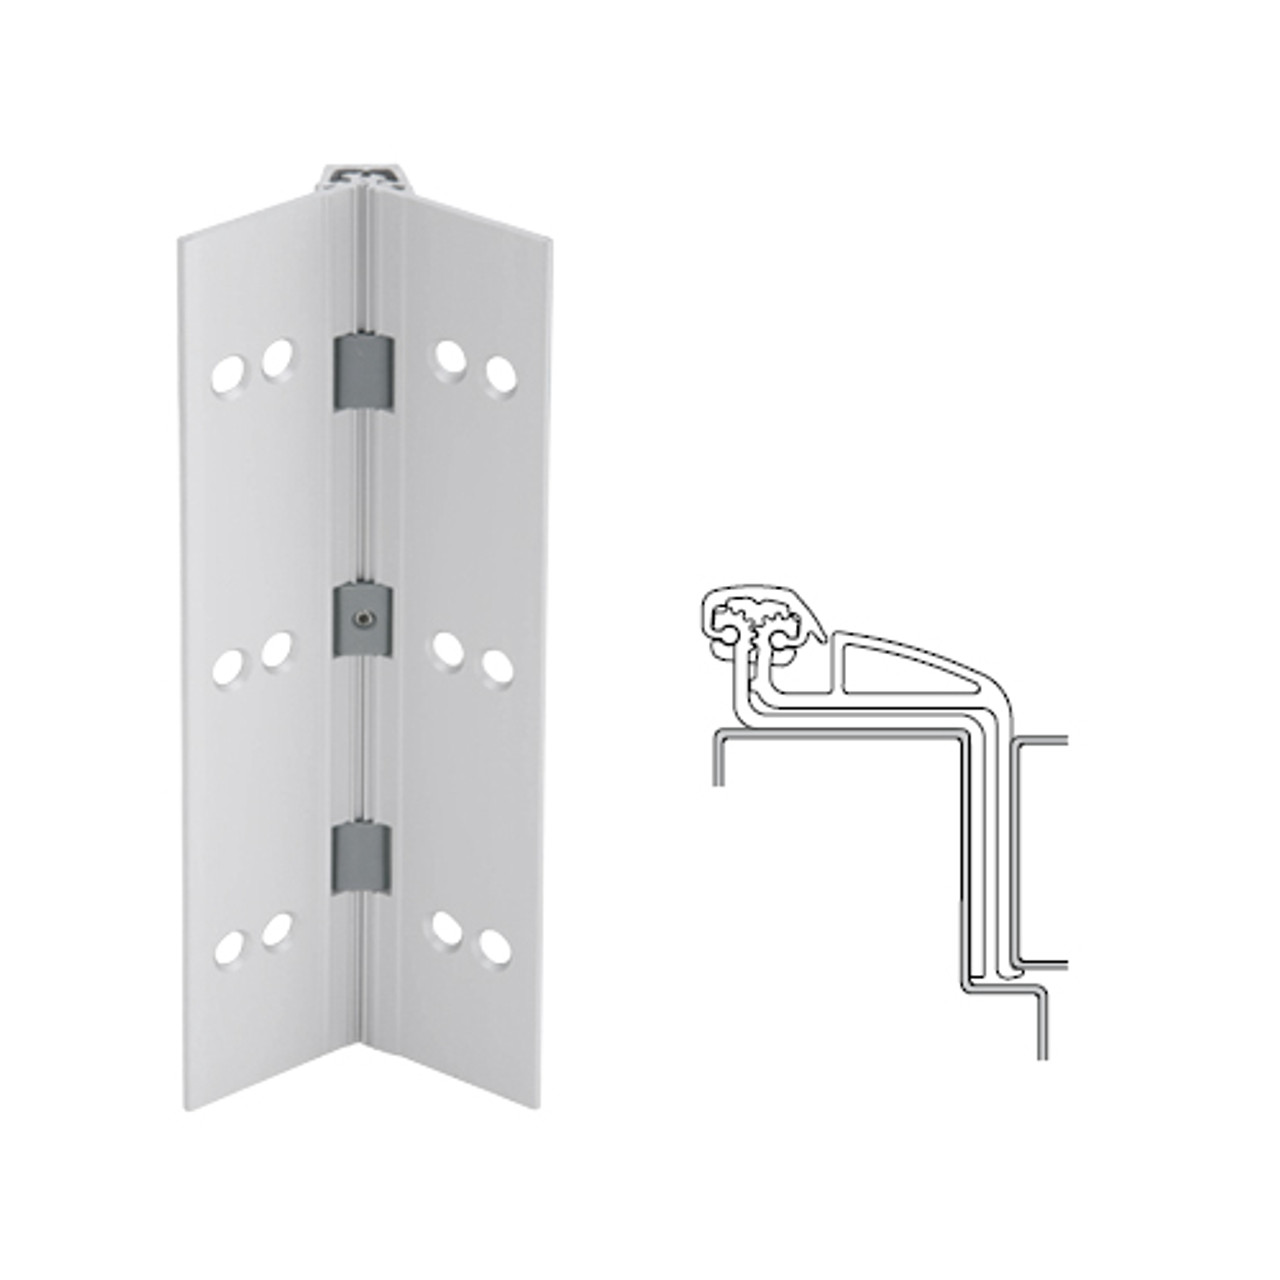 041XY-US28-85-SECWDHM IVES Full Mortise Continuous Geared Hinges with Security Screws - Hex Pin Drive in Satin Aluminum